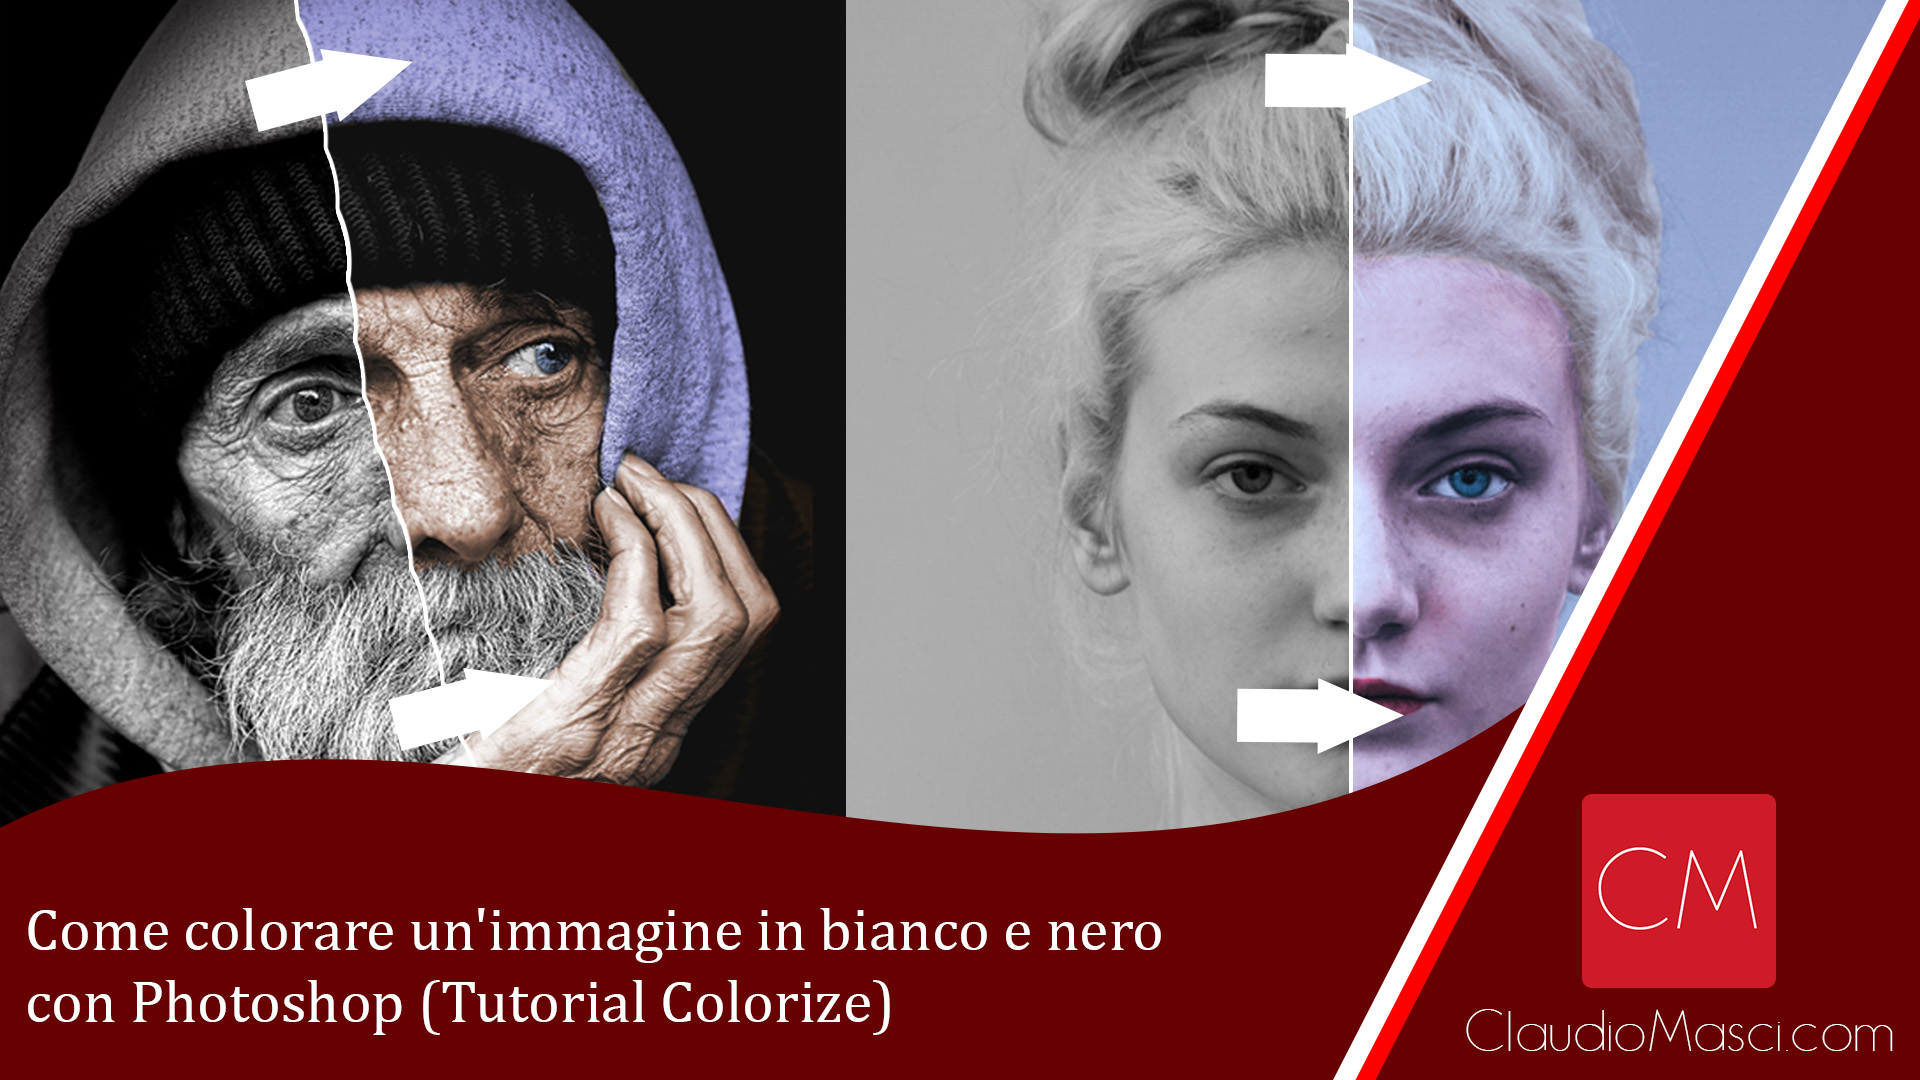 Come colorare un'immagine in bianco e nero con Photoshop (Tutorial Colorize)